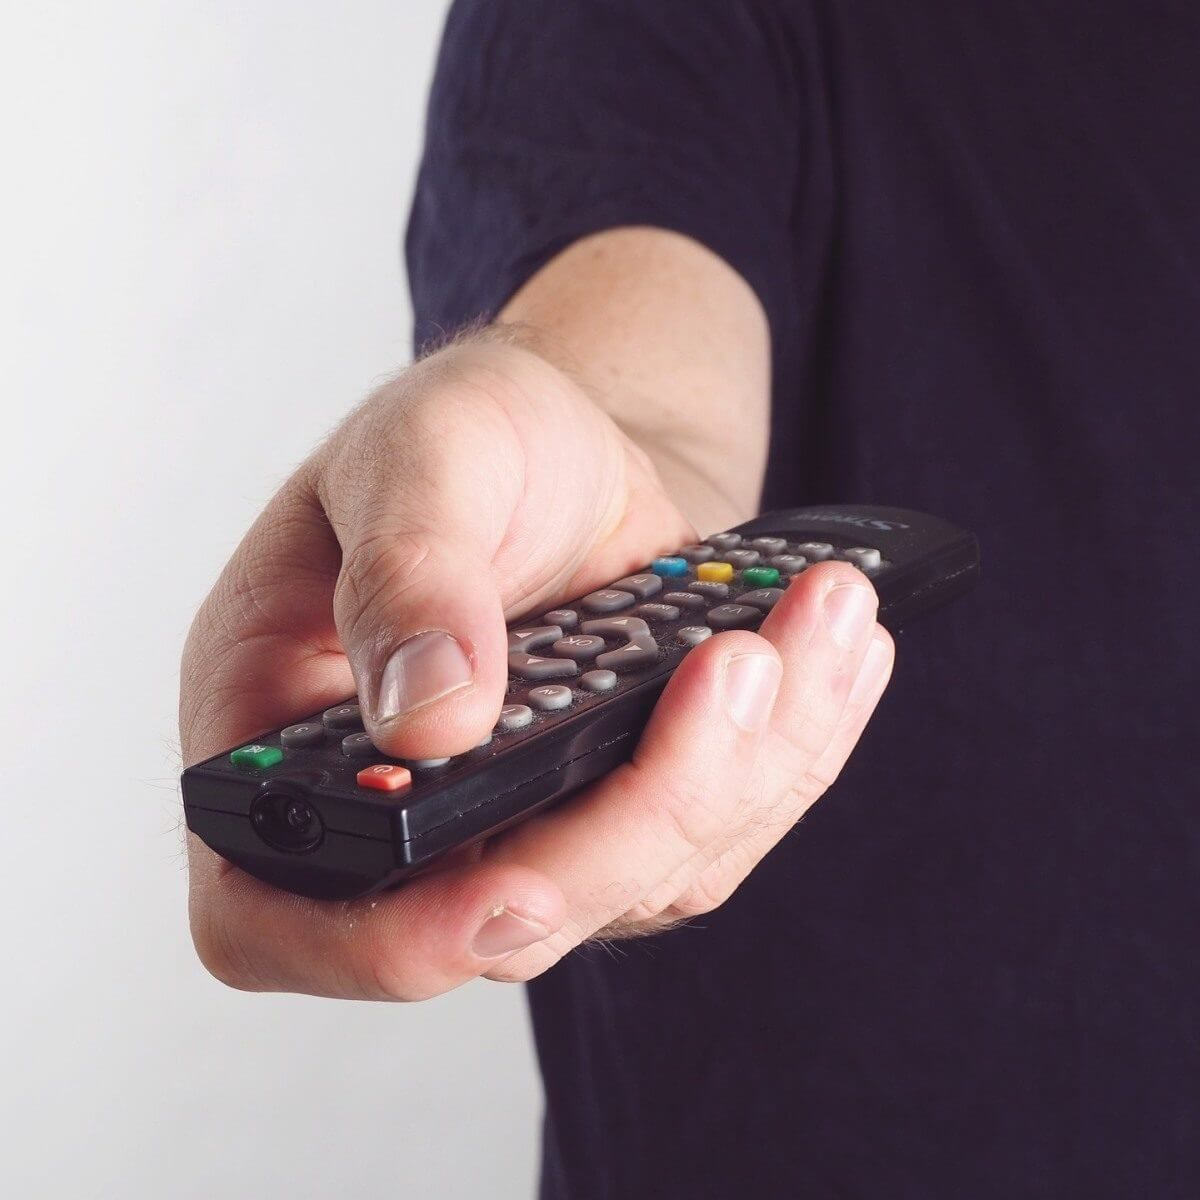 Amazon Fire TV Stick remote not working? Try this